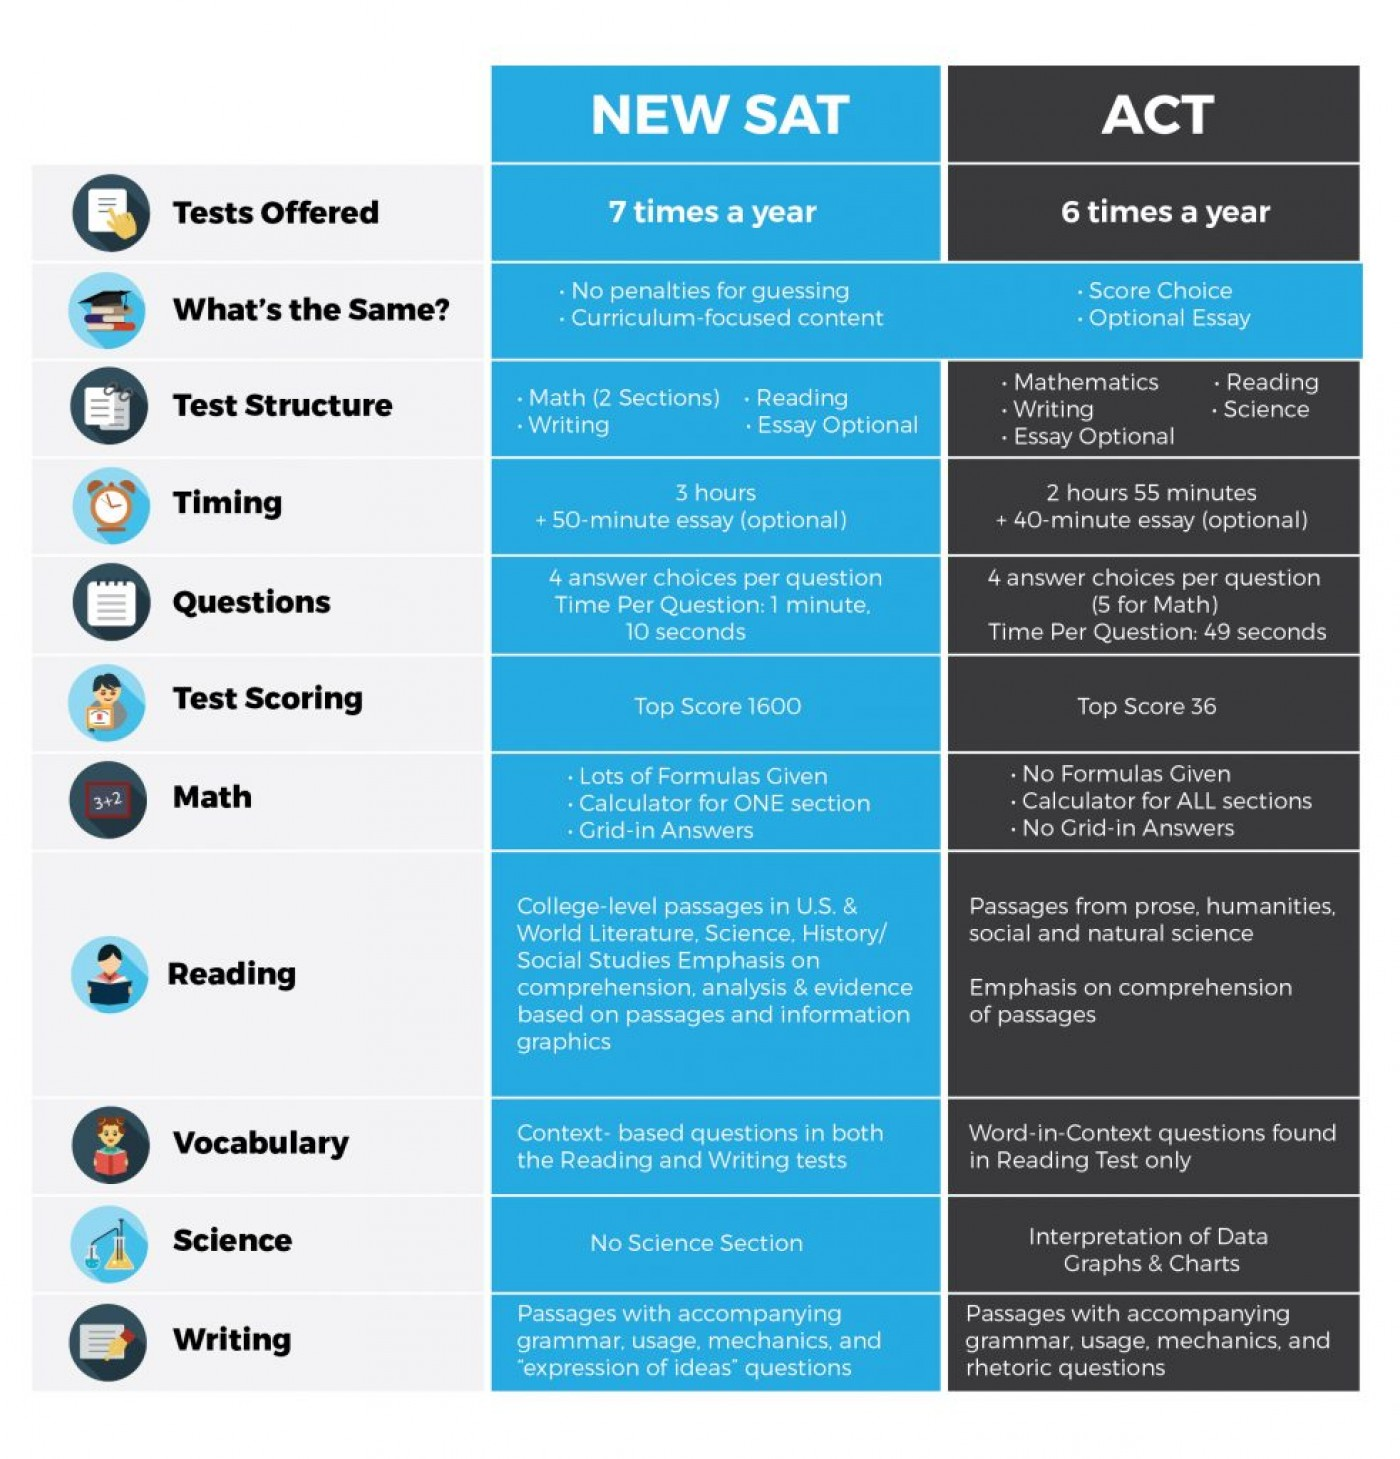 005 What Colleges Require Sat Essay New Vs Act 982x1024 Formidable 1400